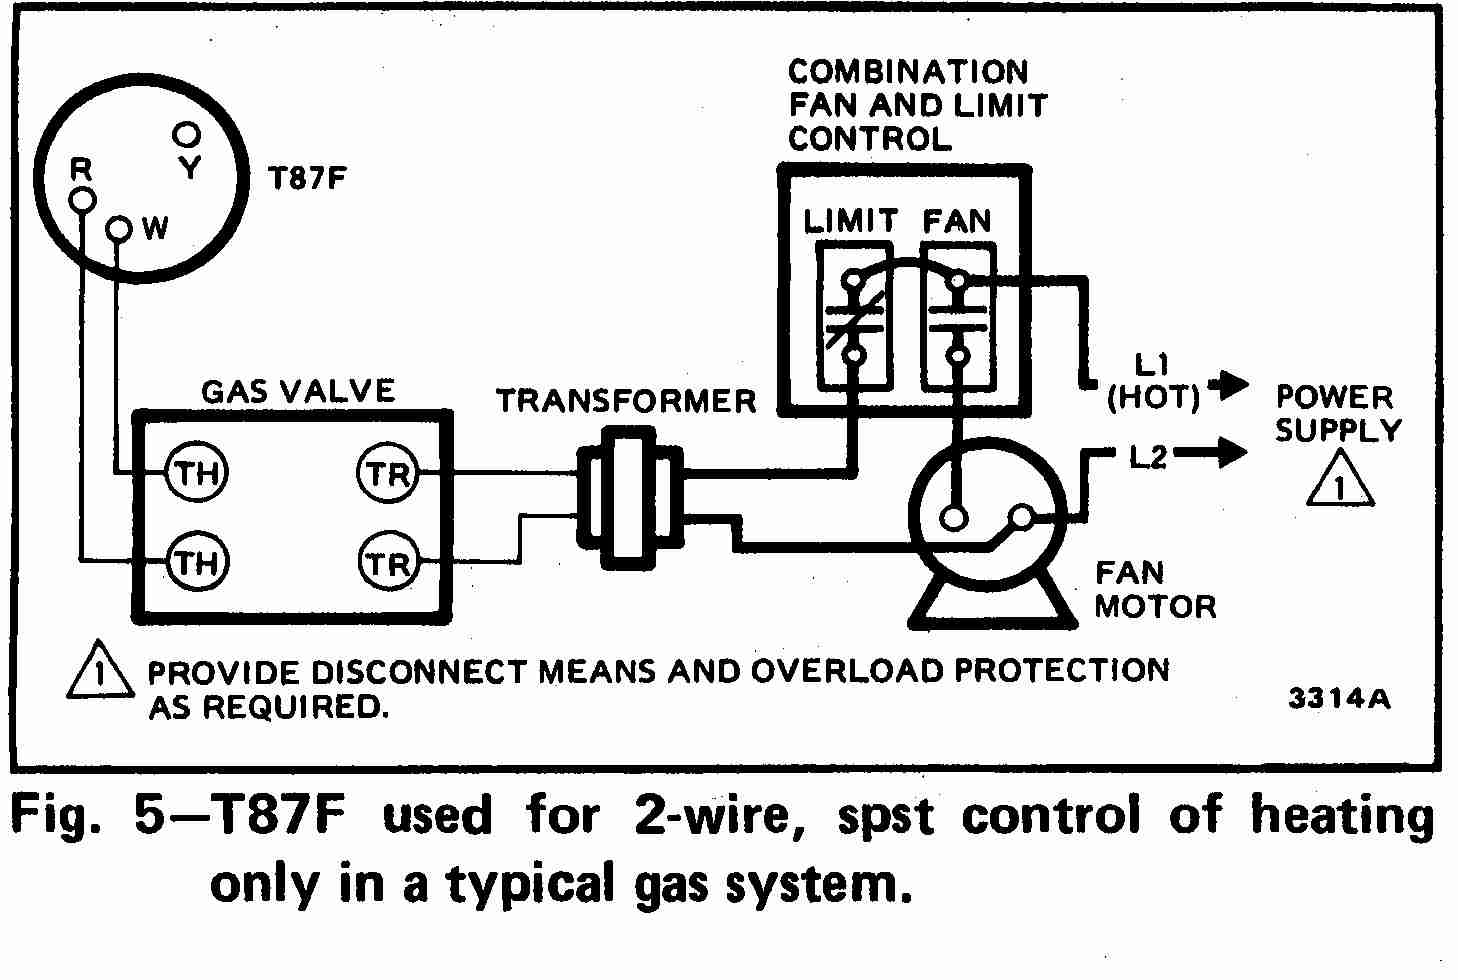 TT_T87F_0002_2Wg_DJF room thermostat wiring diagrams for hvac systems Blower Motor Relay Diagram at gsmx.co